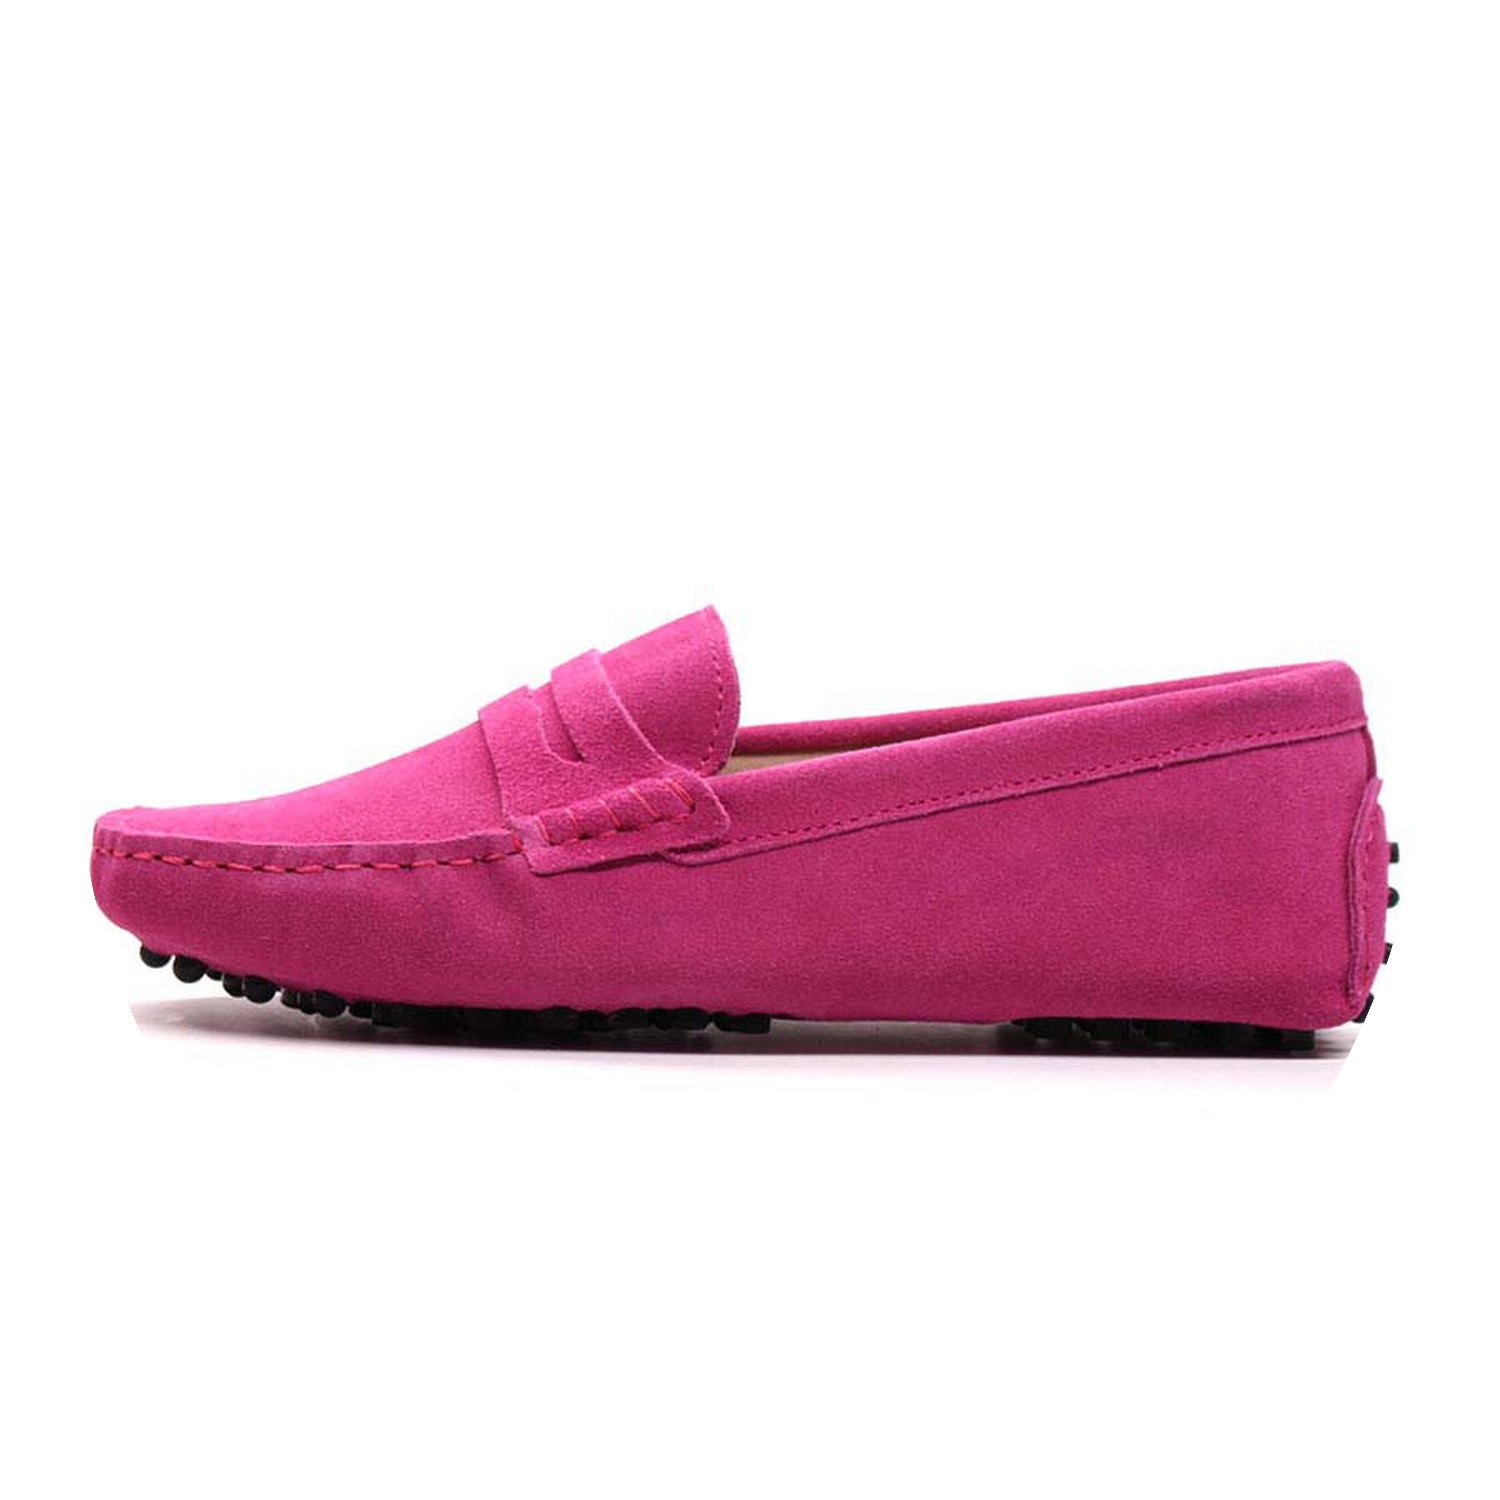 2018 New Women Flats Genuine Leather Driving Shoes Summer Women Casual Shoes B07DV3W9F2 6 B(M) US|Rose Red